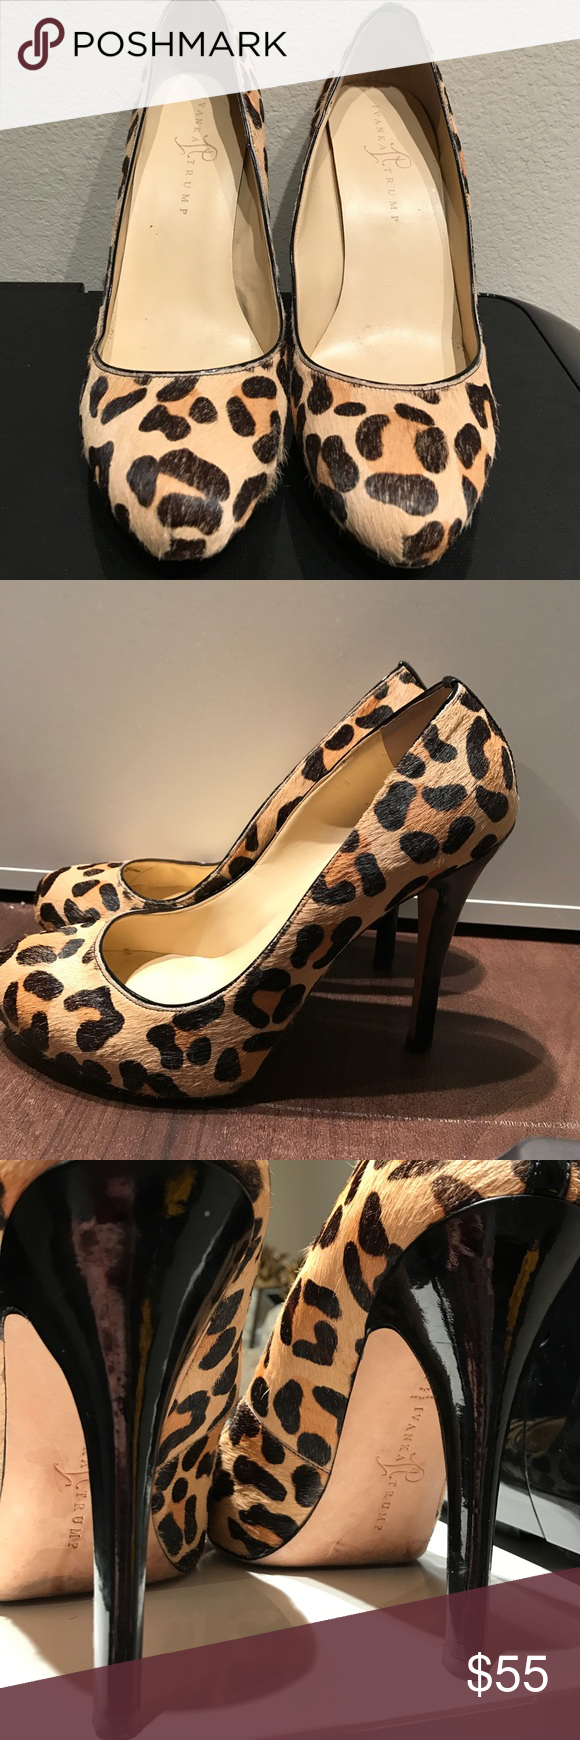 Ivanka Trump Leopard Print Heels Nordstrom Ivanka Trump heels. Leather and  animal print. Ivanka